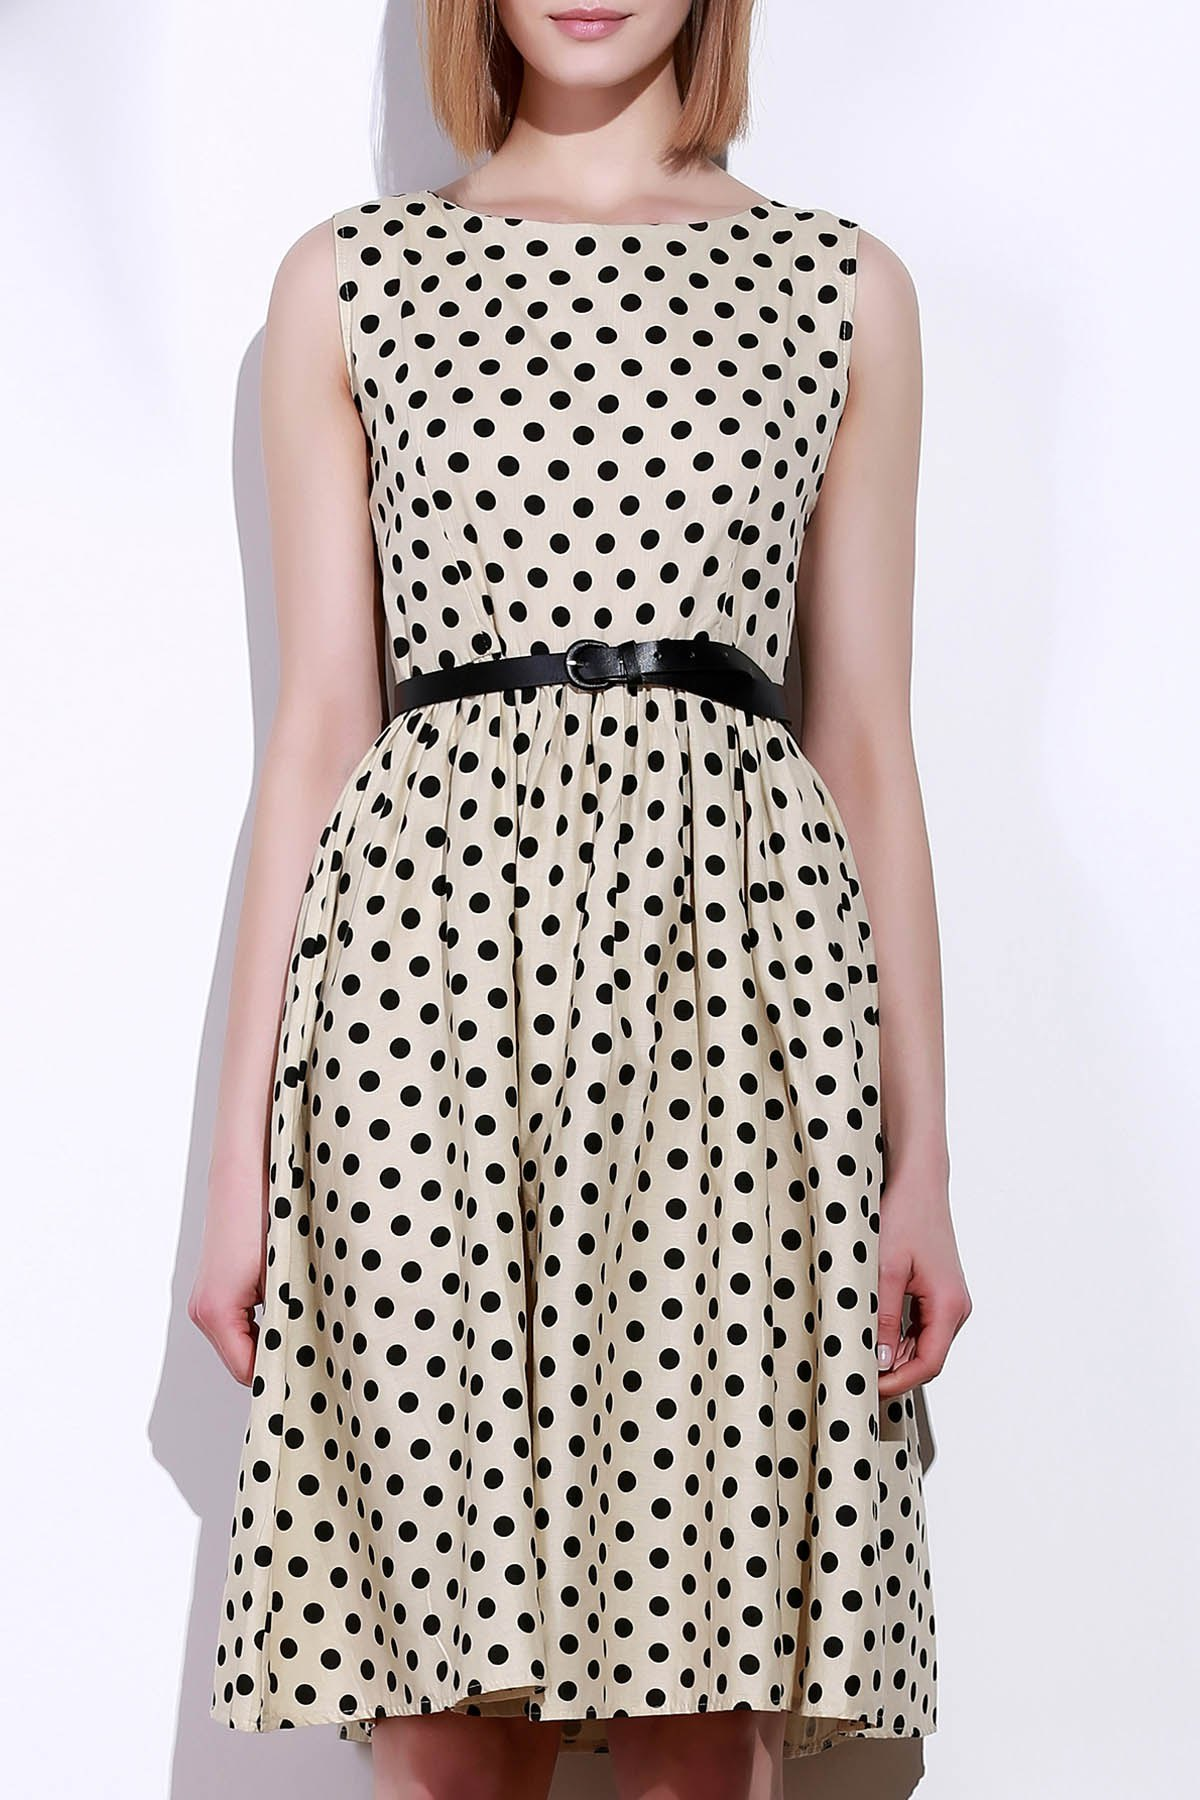 Retro Style Boat Neck Sleeveless Polka Dot Women's Dress